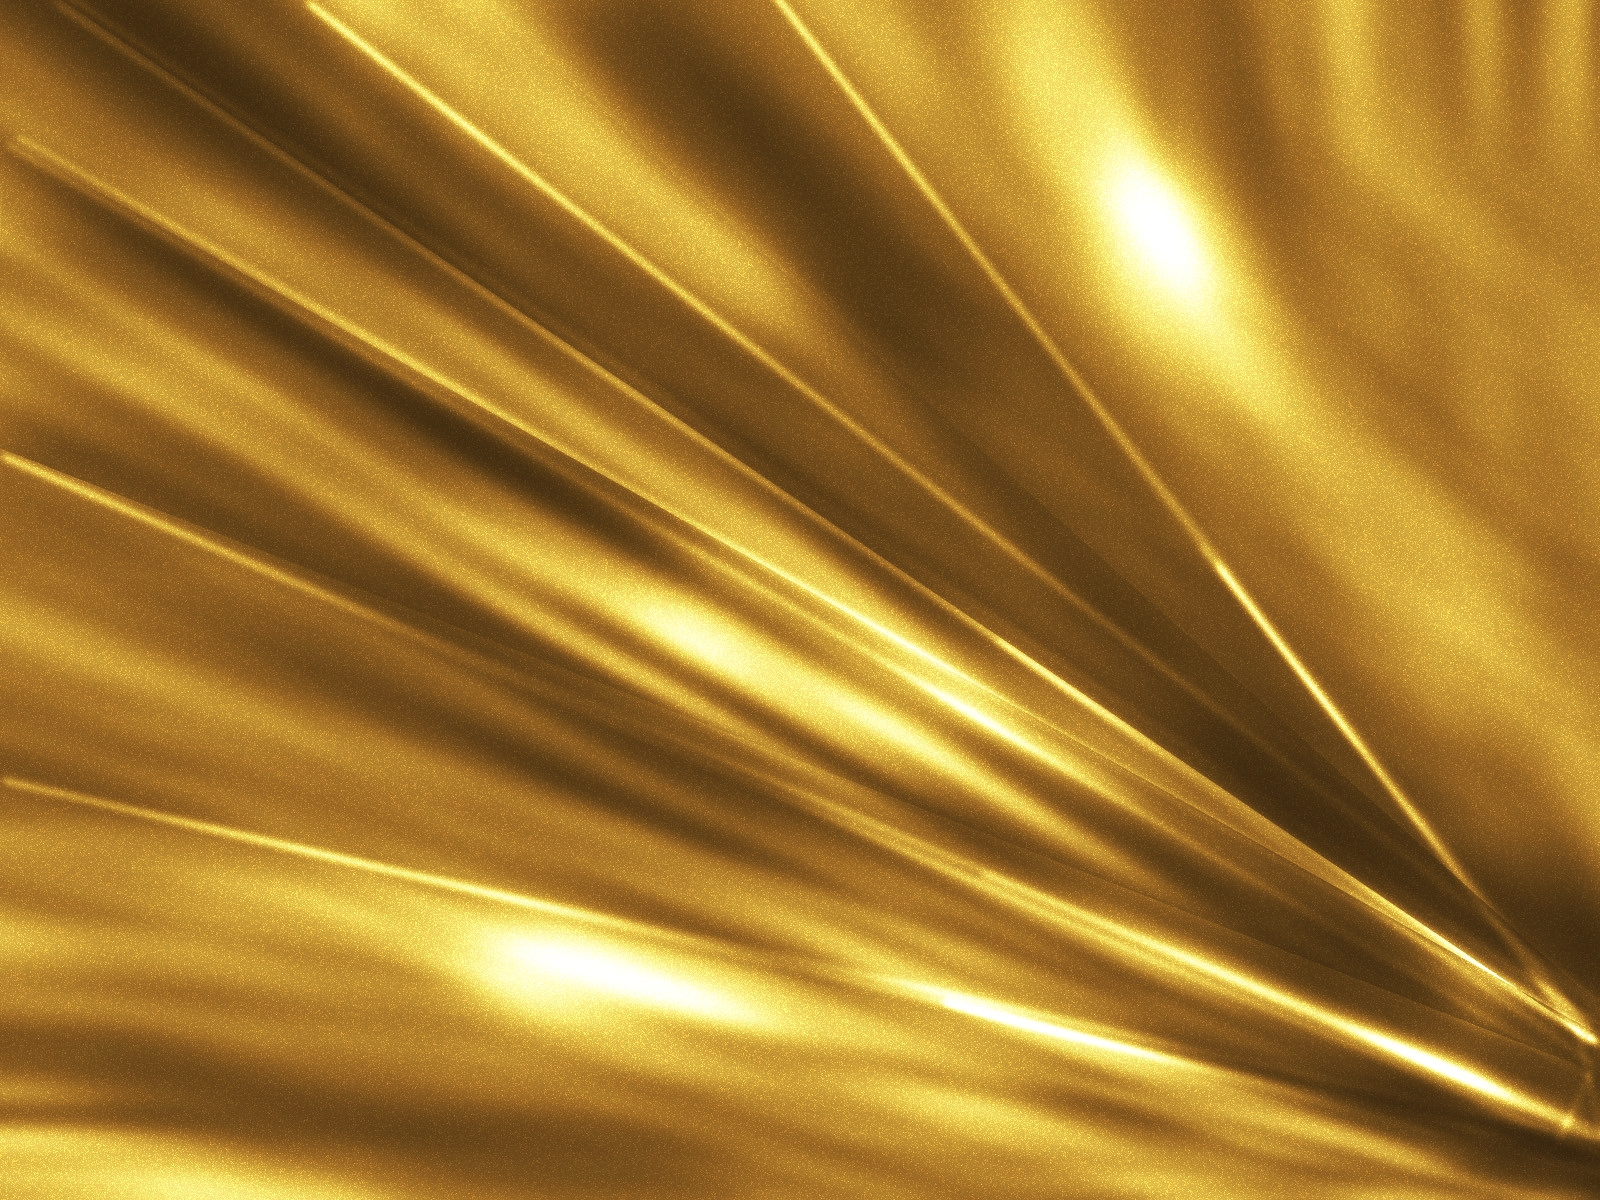 Gold and White Background